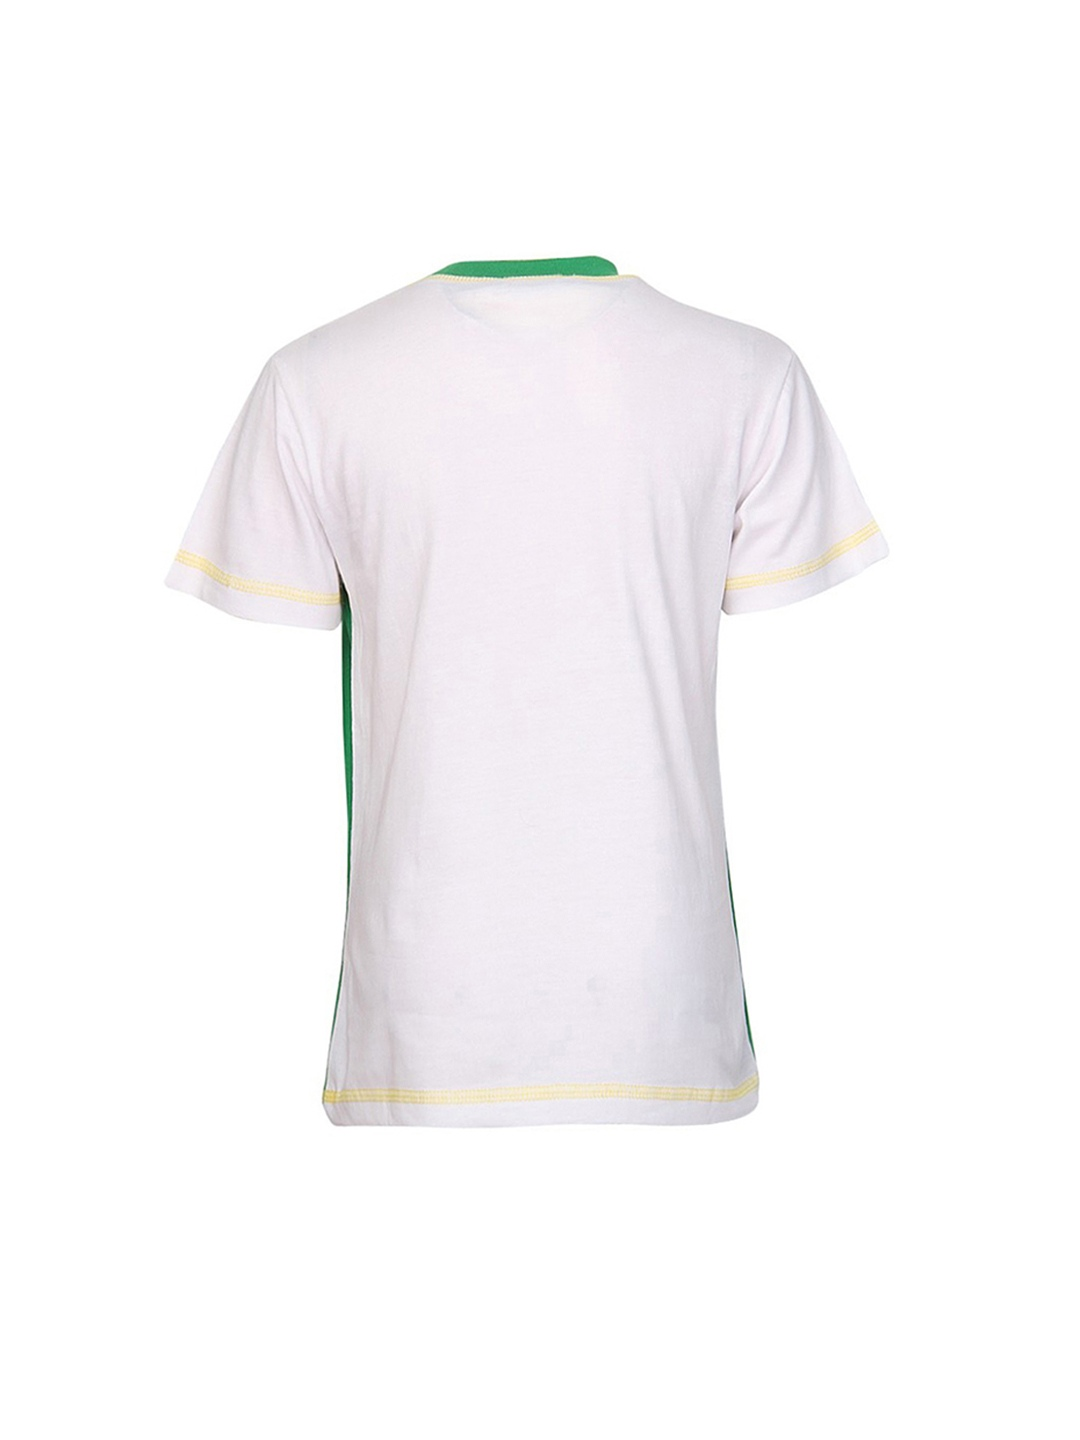 Myntra cool quotient boys green white printed t shirt for Boys printed t shirts